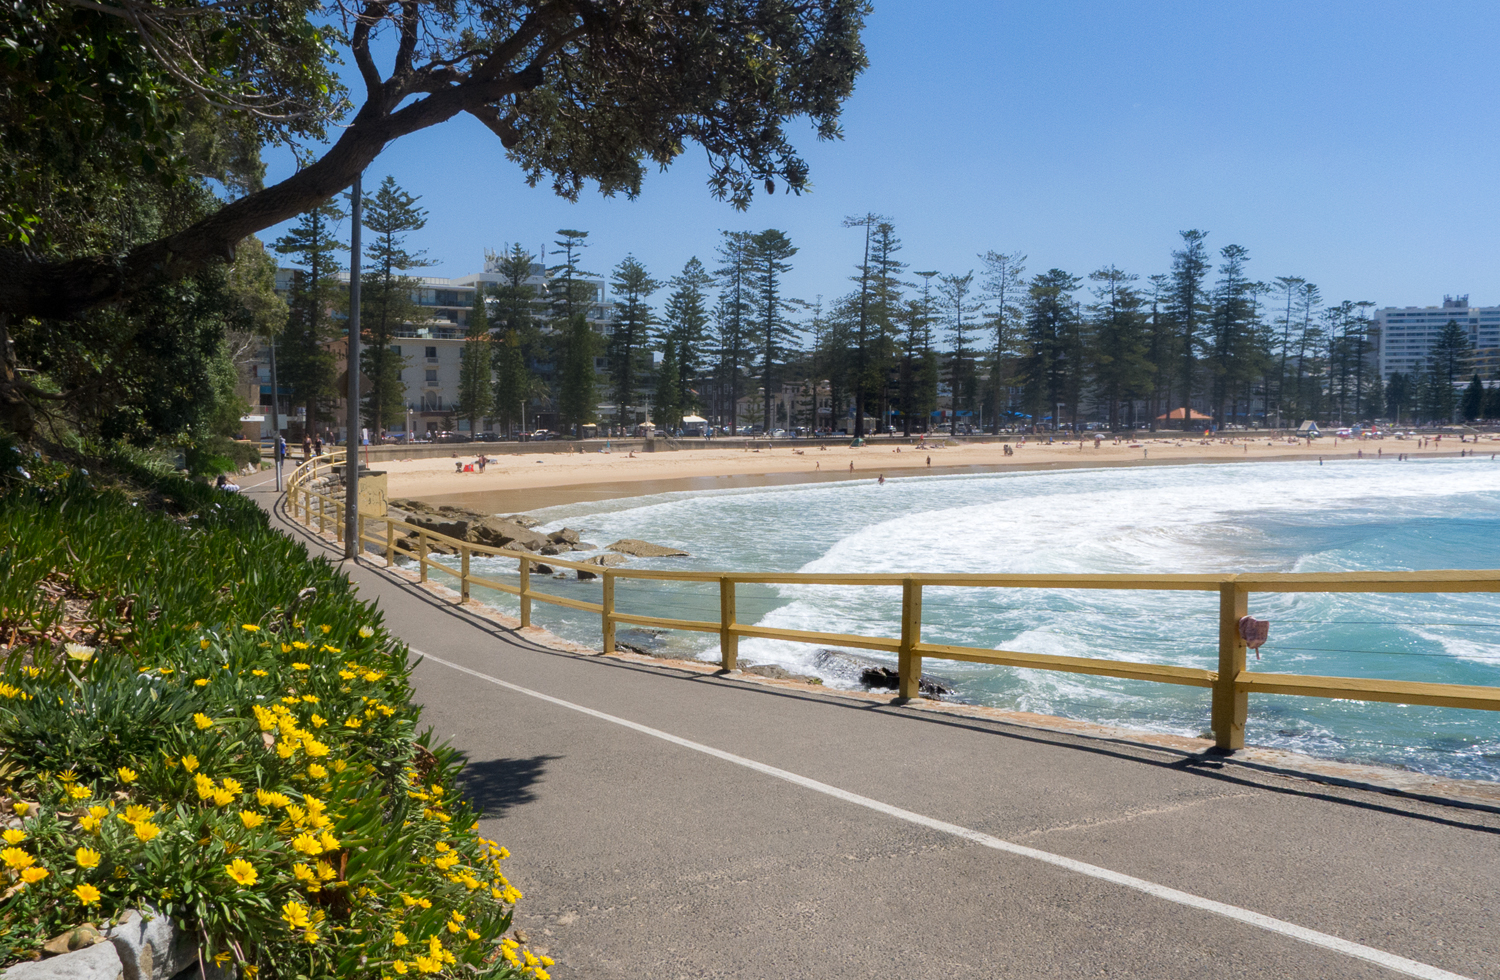 Between Manly and Shelly beaches